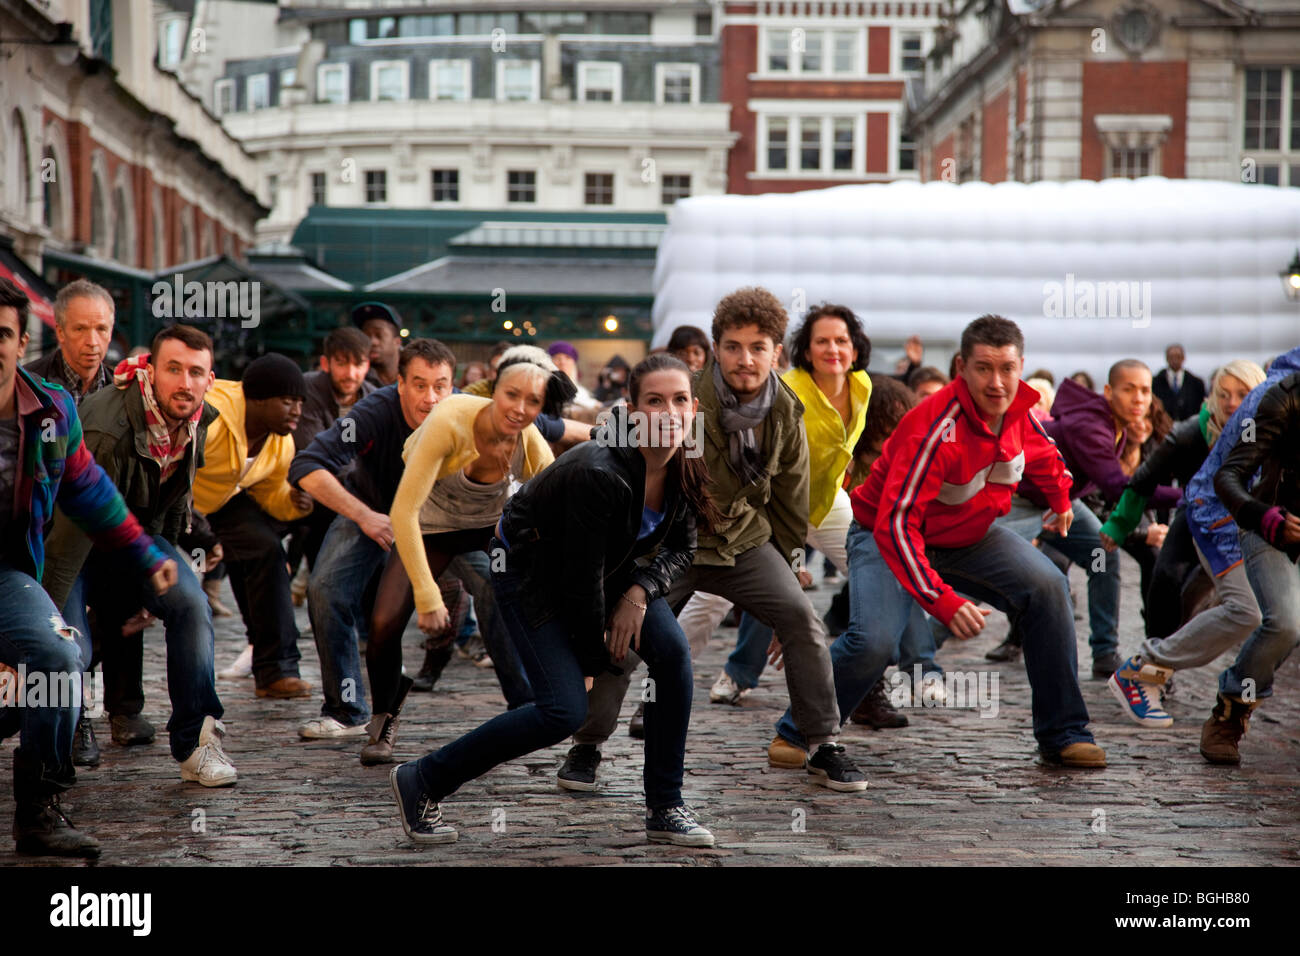 Flash Mob Stock Photos & Flash Mob Stock Images - Alamy